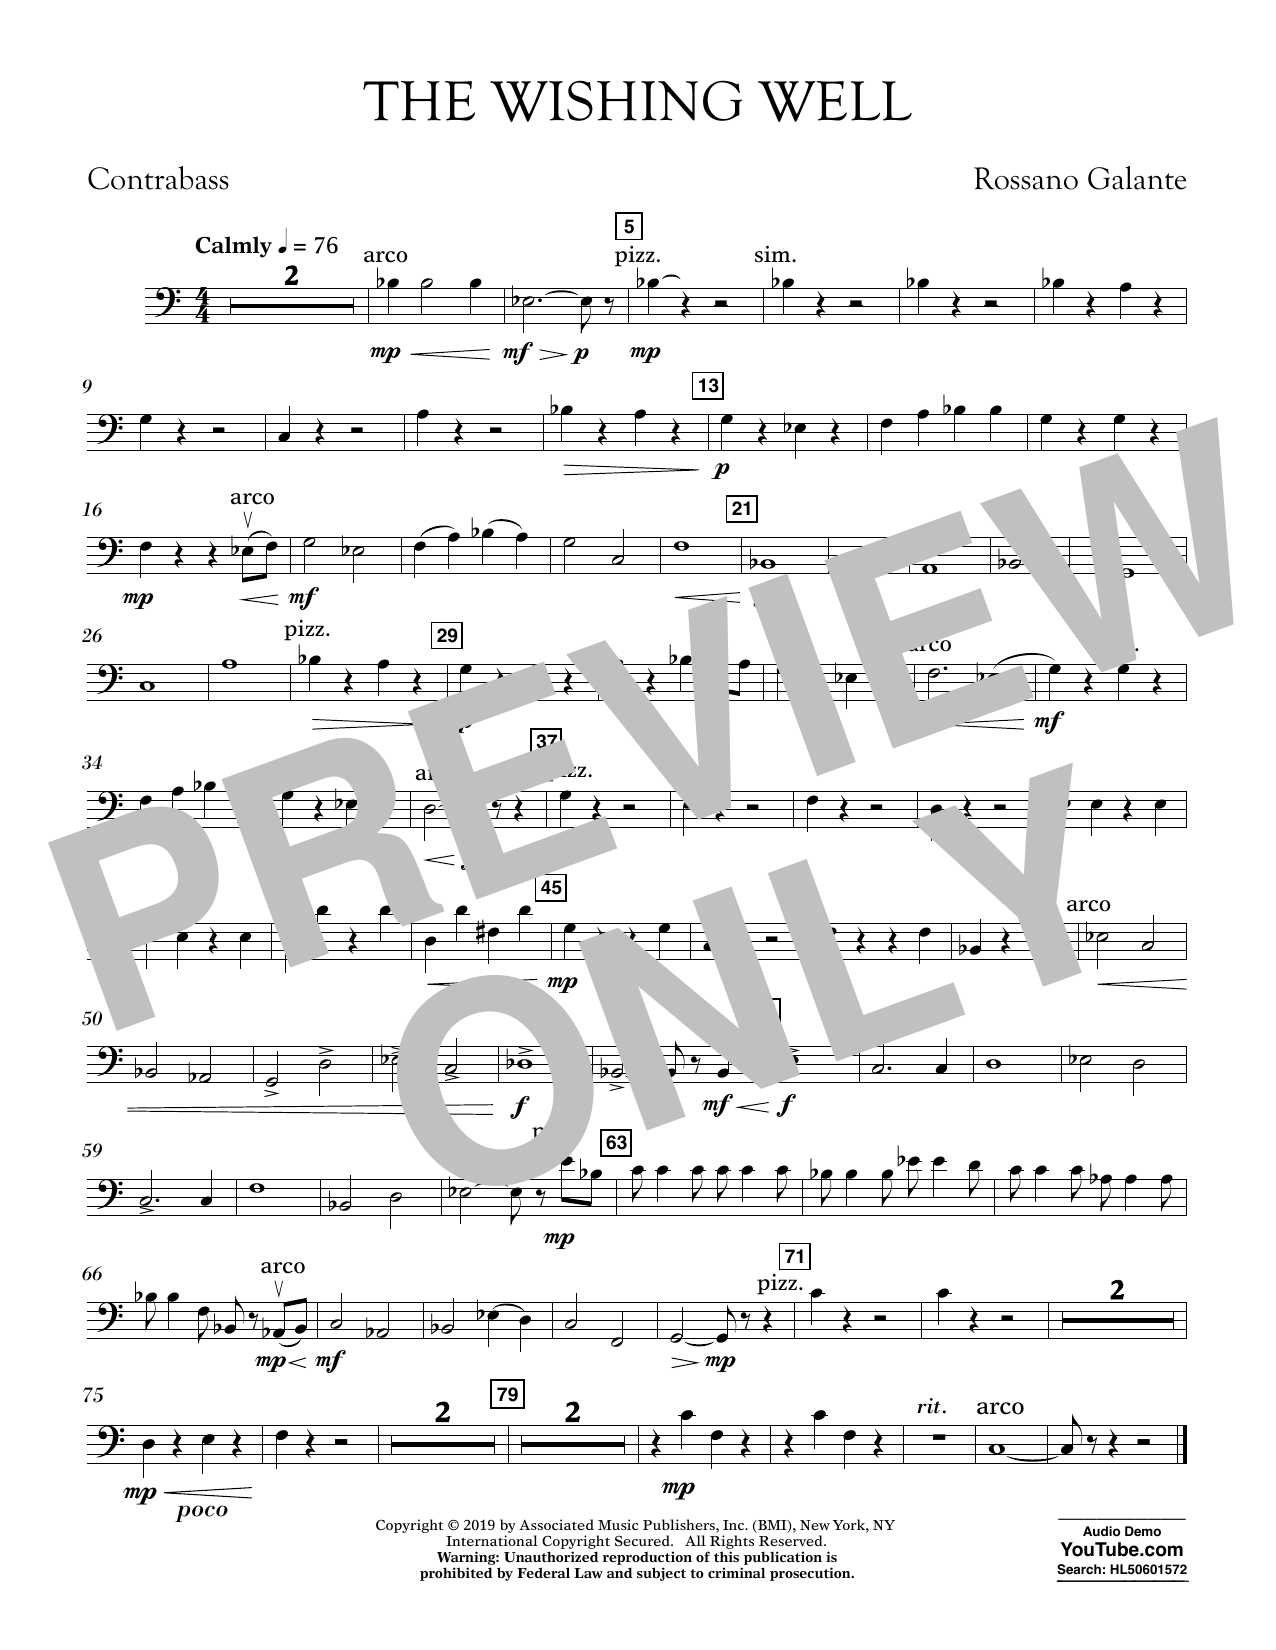 Rossano Galante The Wishing Well - Contrabass sheet music preview music notes and score for Concert Band including 1 page(s)